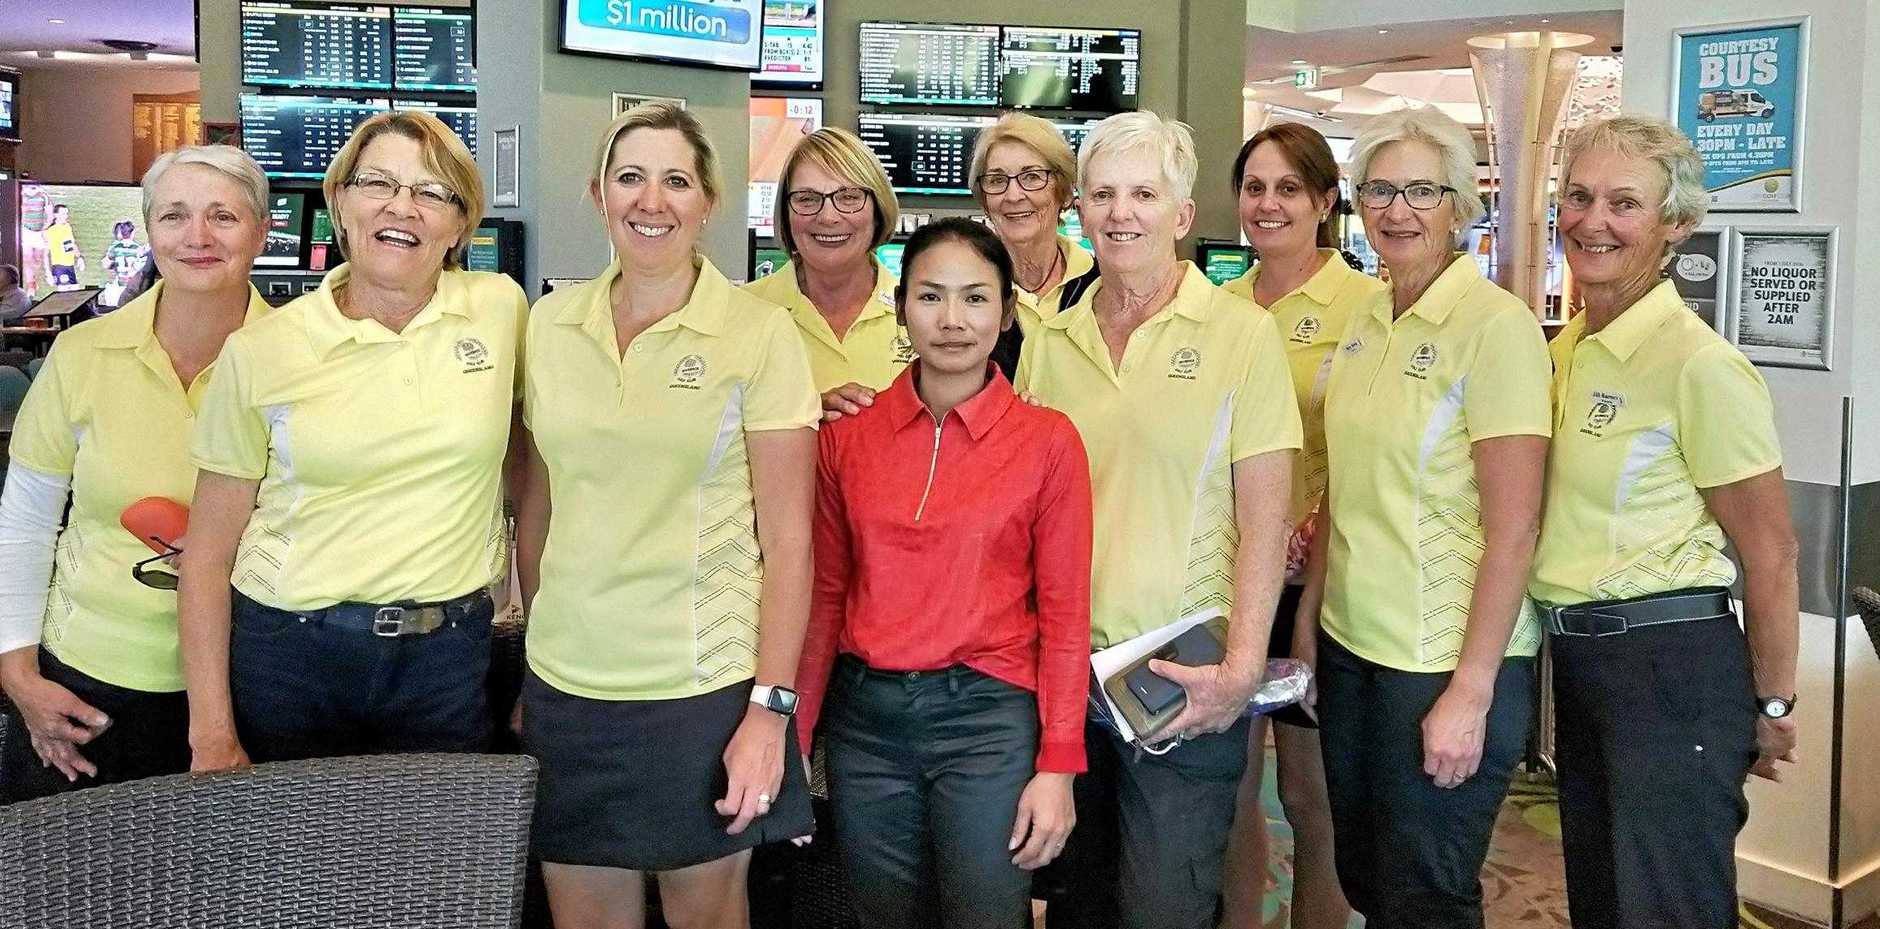 The Warwick team performed well in an open day pennants at the City Golf Club this week. (From left) Di Evans, Marg Adcock, Mel McLennan, Judy Lester, Nachcha Craggs, Yvonne Pinington, Majella Kahler, Anna Cox, Mary Young and Jill Barnes.